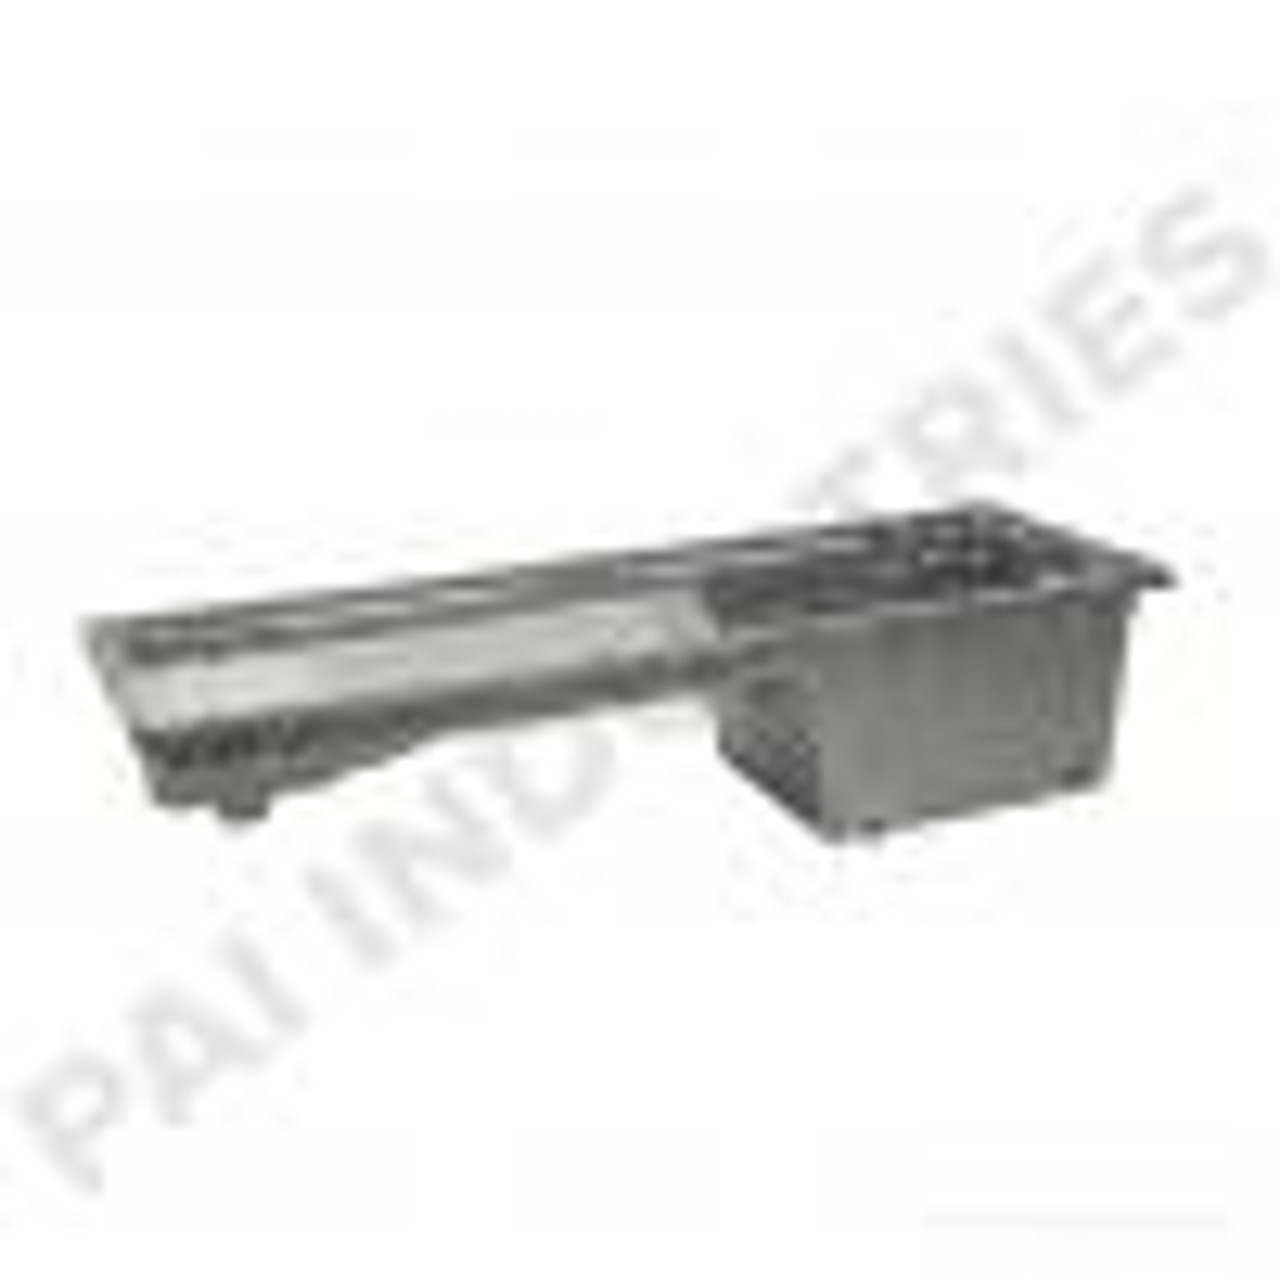 PAI Industries Oil Pan For Caterpillar 3406E: 341370